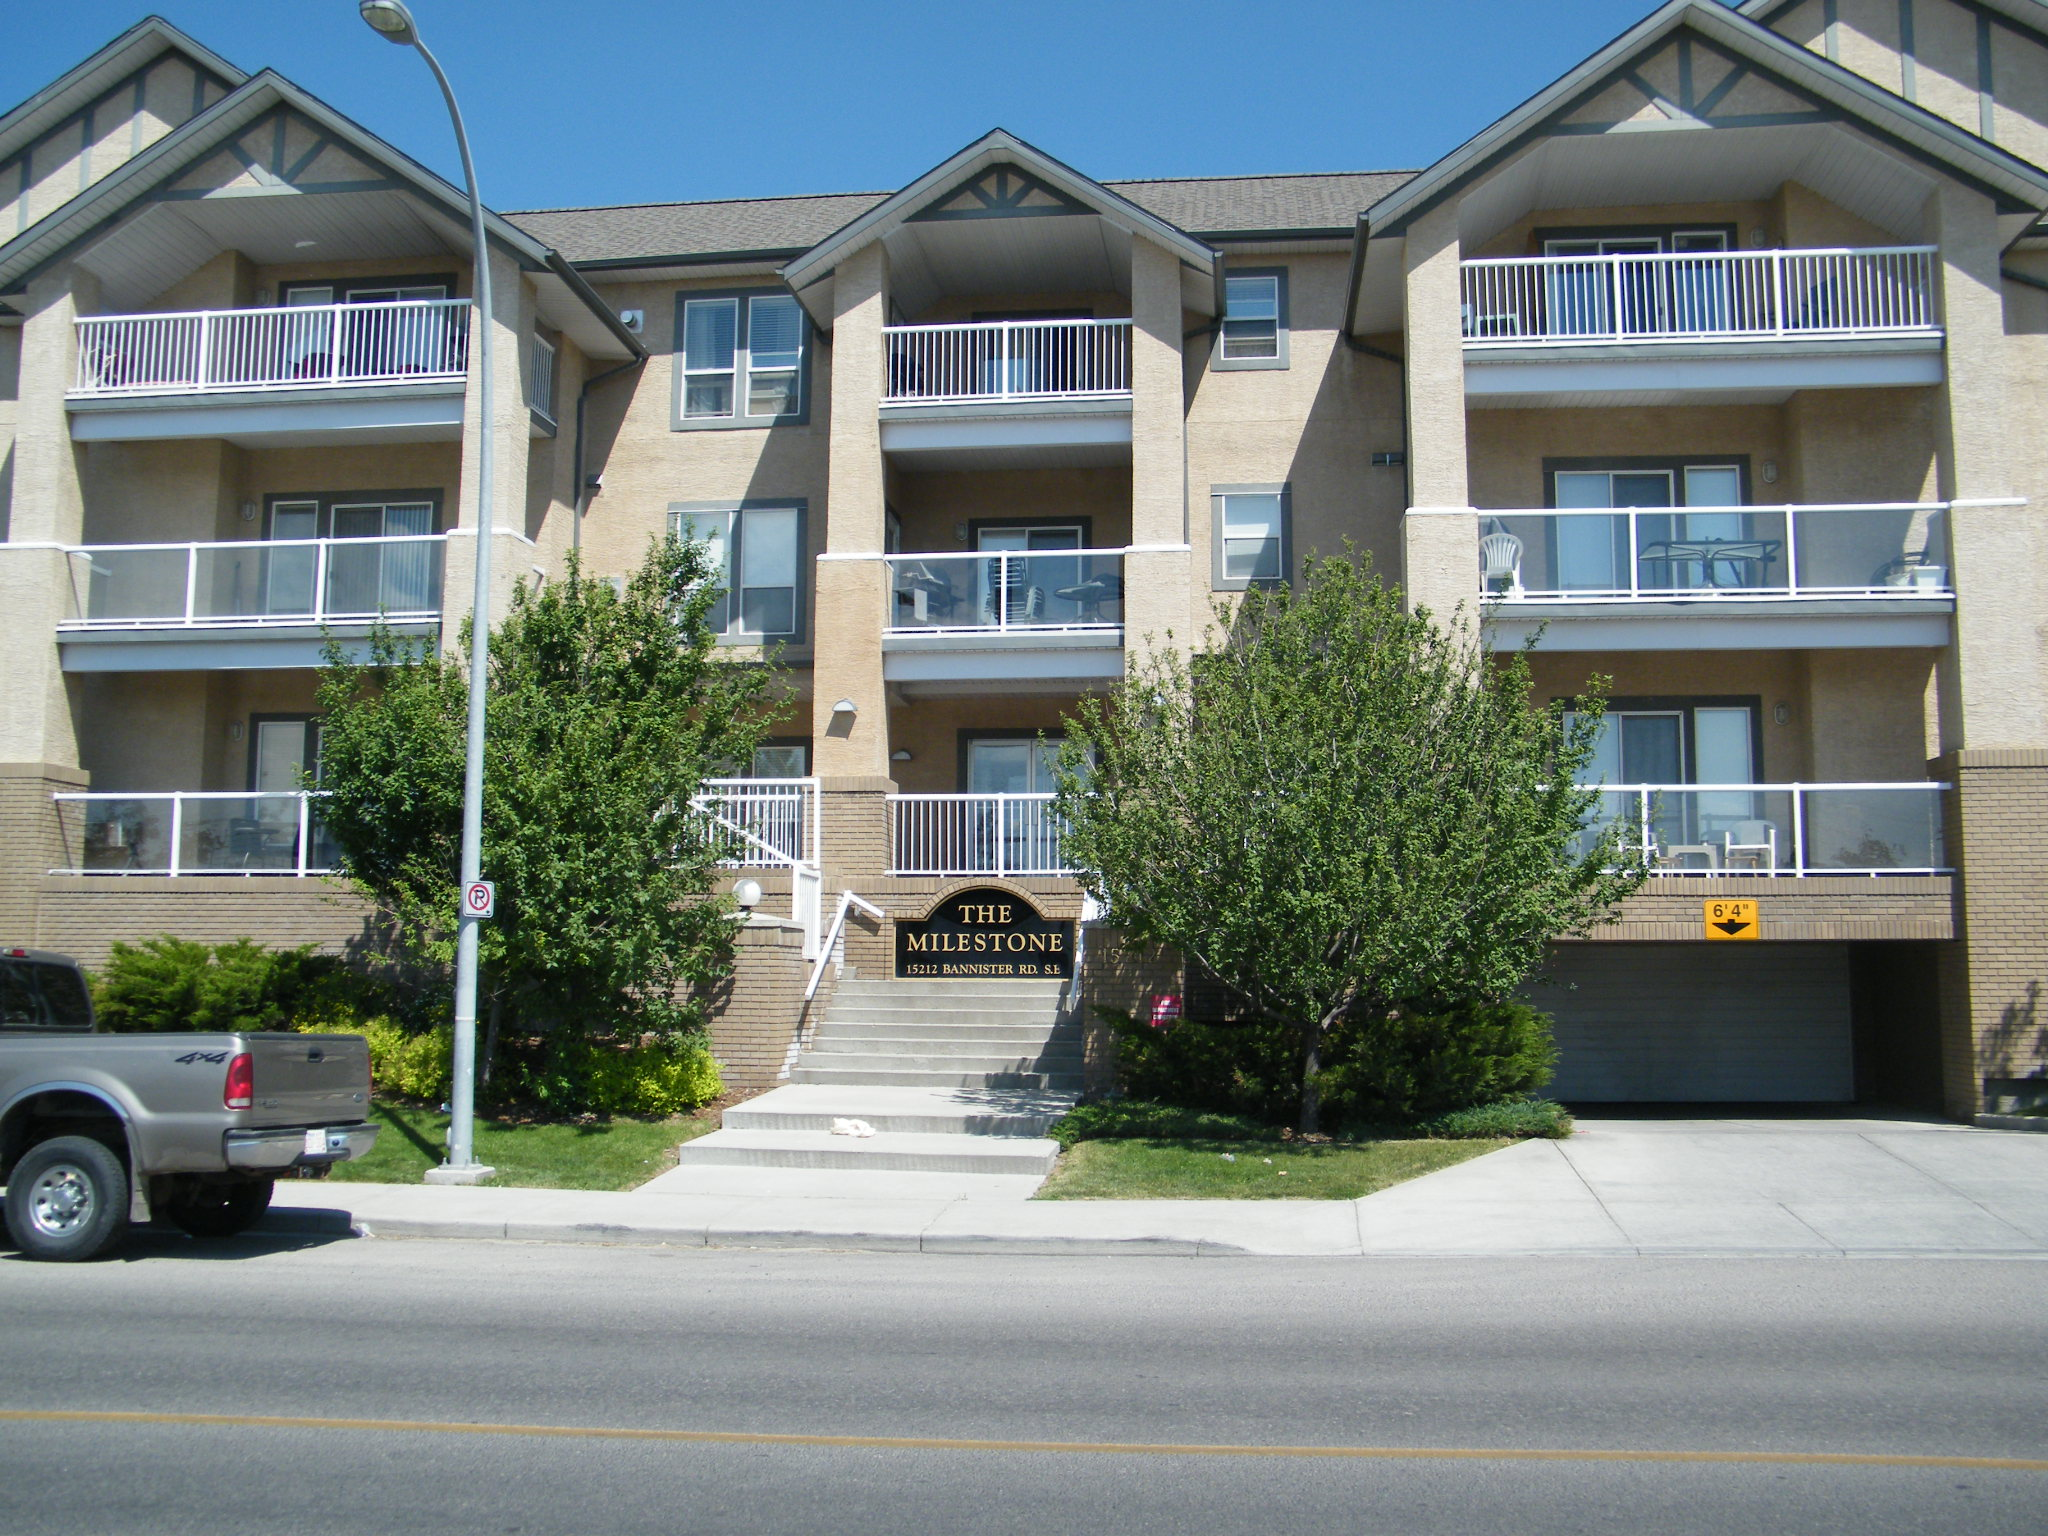 This is an example of a property located in Calgary, Alberta whose Reserve Fund Study has been completed by Delta Appraisal Corporation